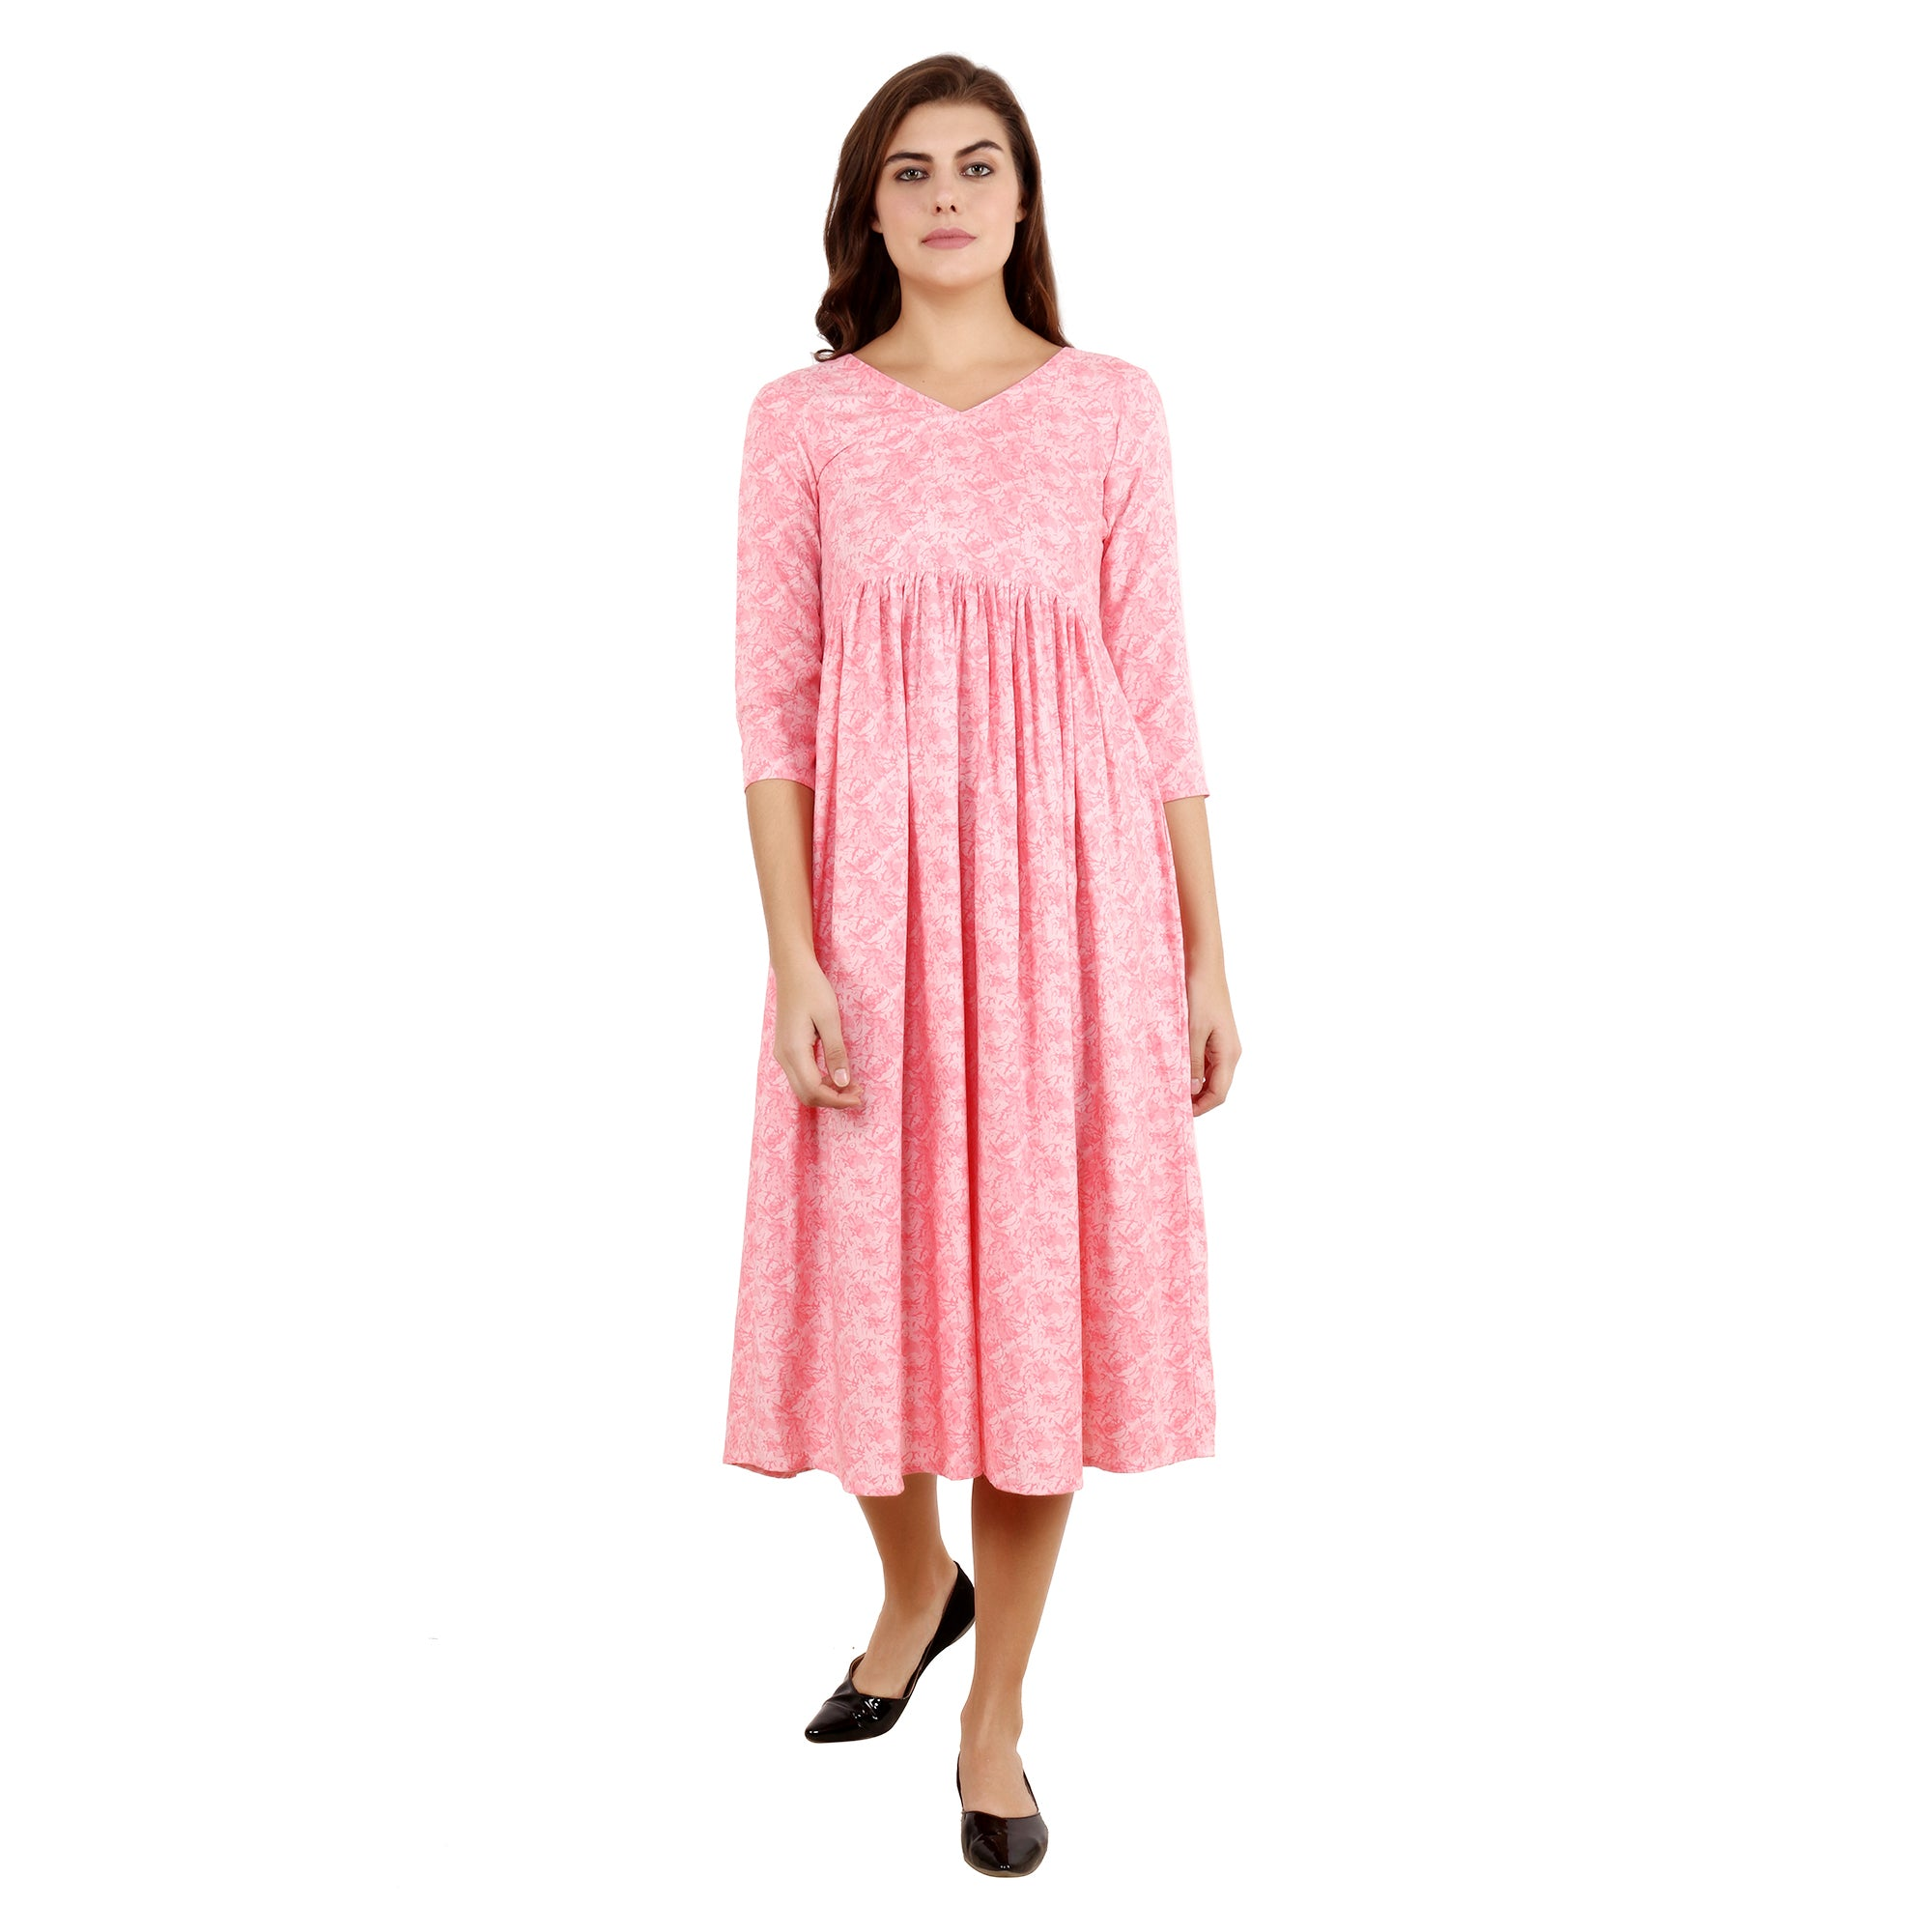 all size, best online store, breathable, calf length, comfortable, flare, floral, knee length, maternity, pink, plus size, pregnancy, print, printed, rayon, reasonable price, skin friendly fa